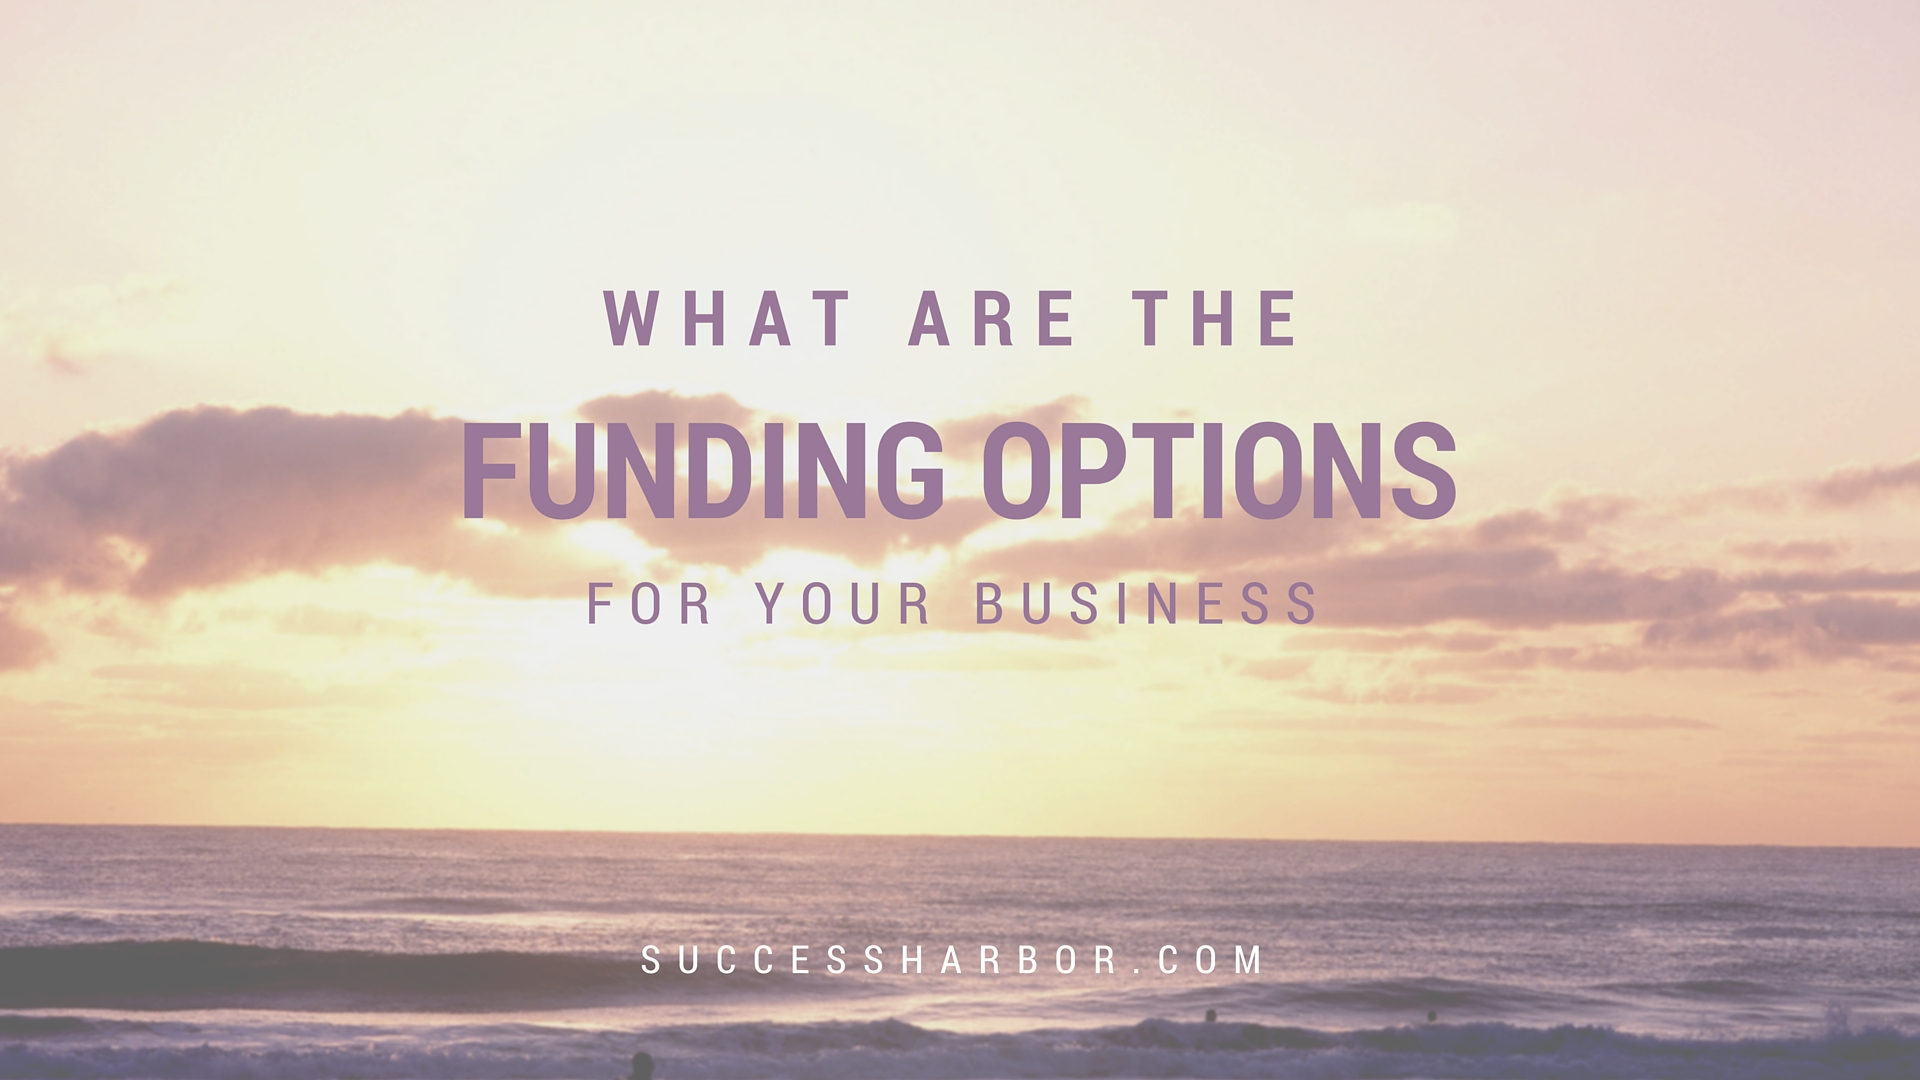 business-funding-11202015